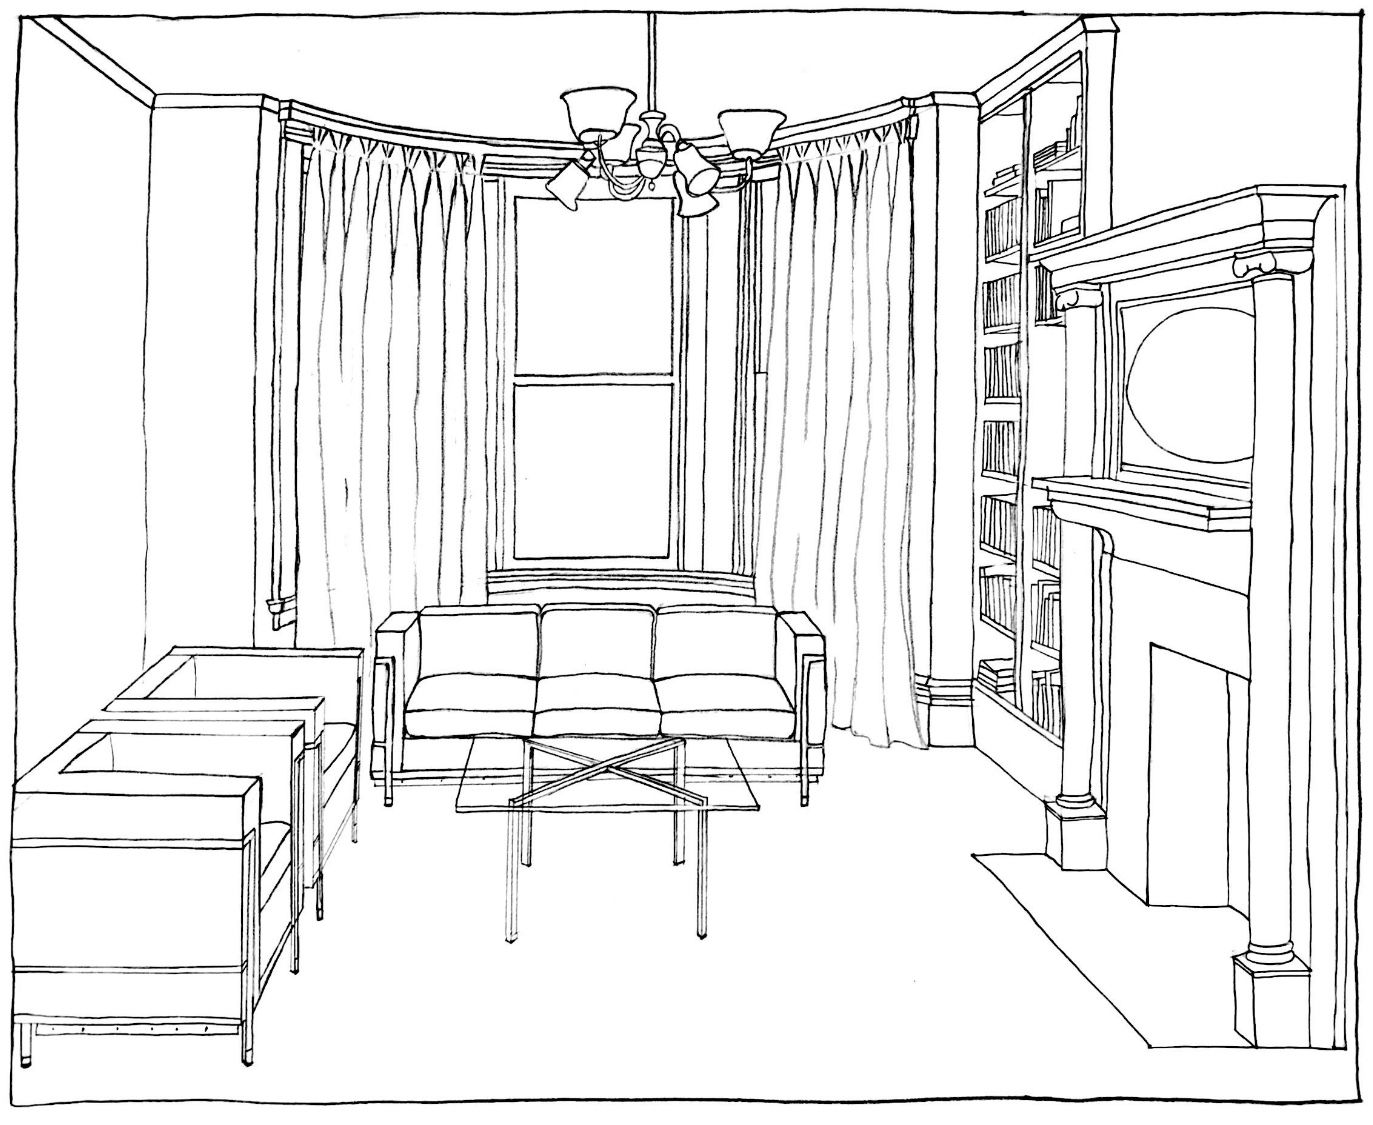 Living Room - Perspective Drawing